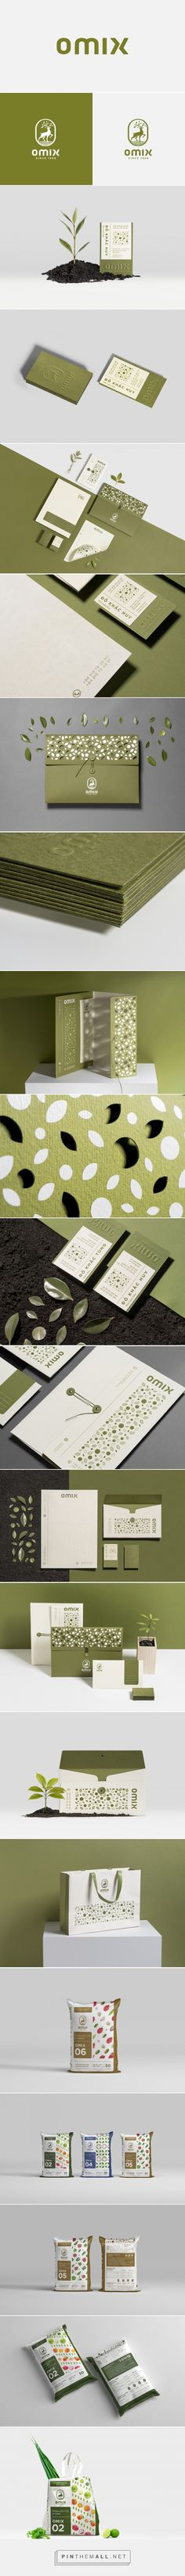 Phan Bon Omix Agricultural Products Producer Branding and Packaging by Bratus